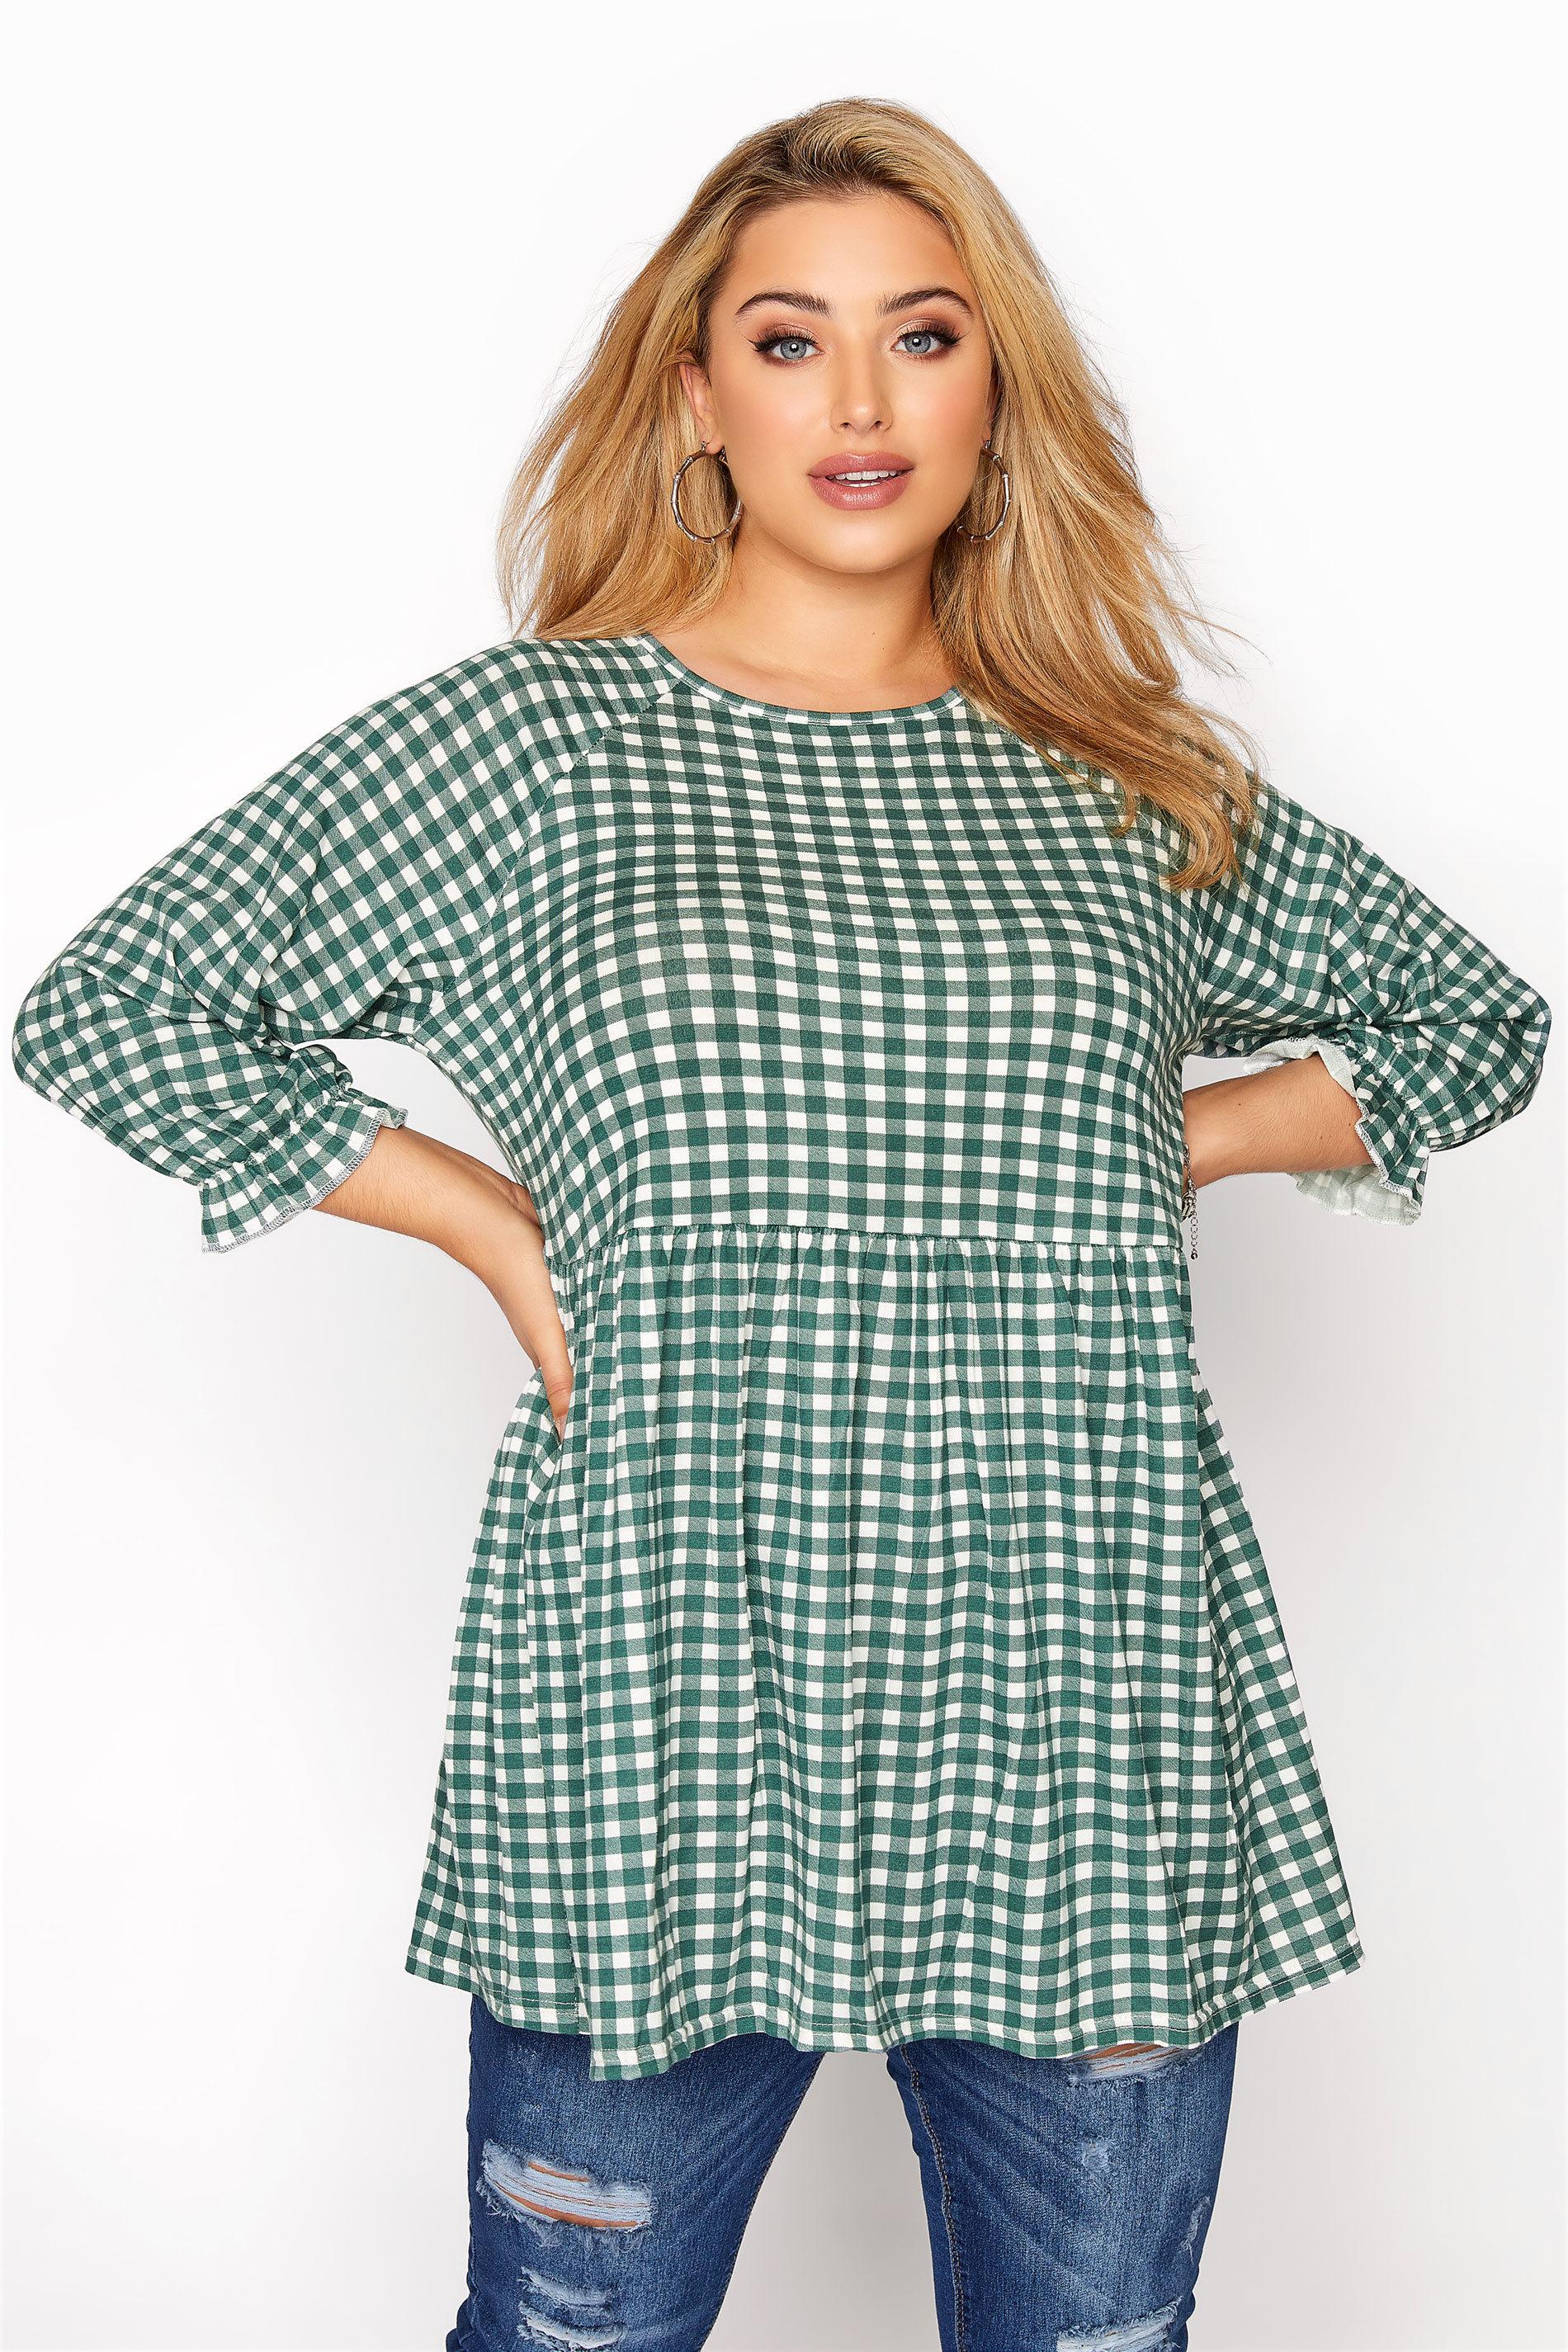 LIMITED COLLECTION Green & White Gingham Smock Top_A.jpg